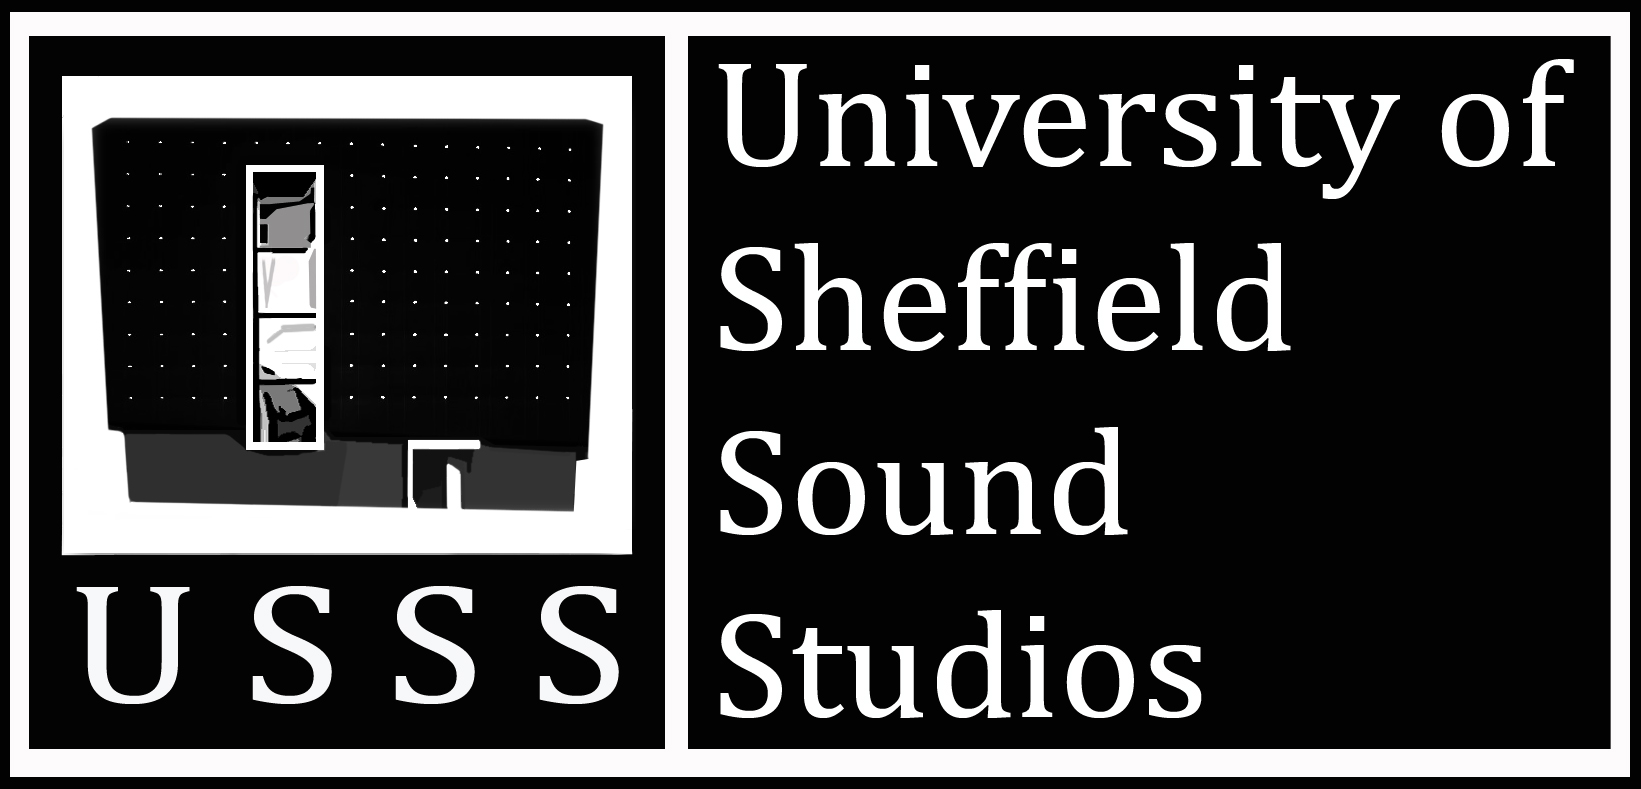 Usss The University Of Sheffield